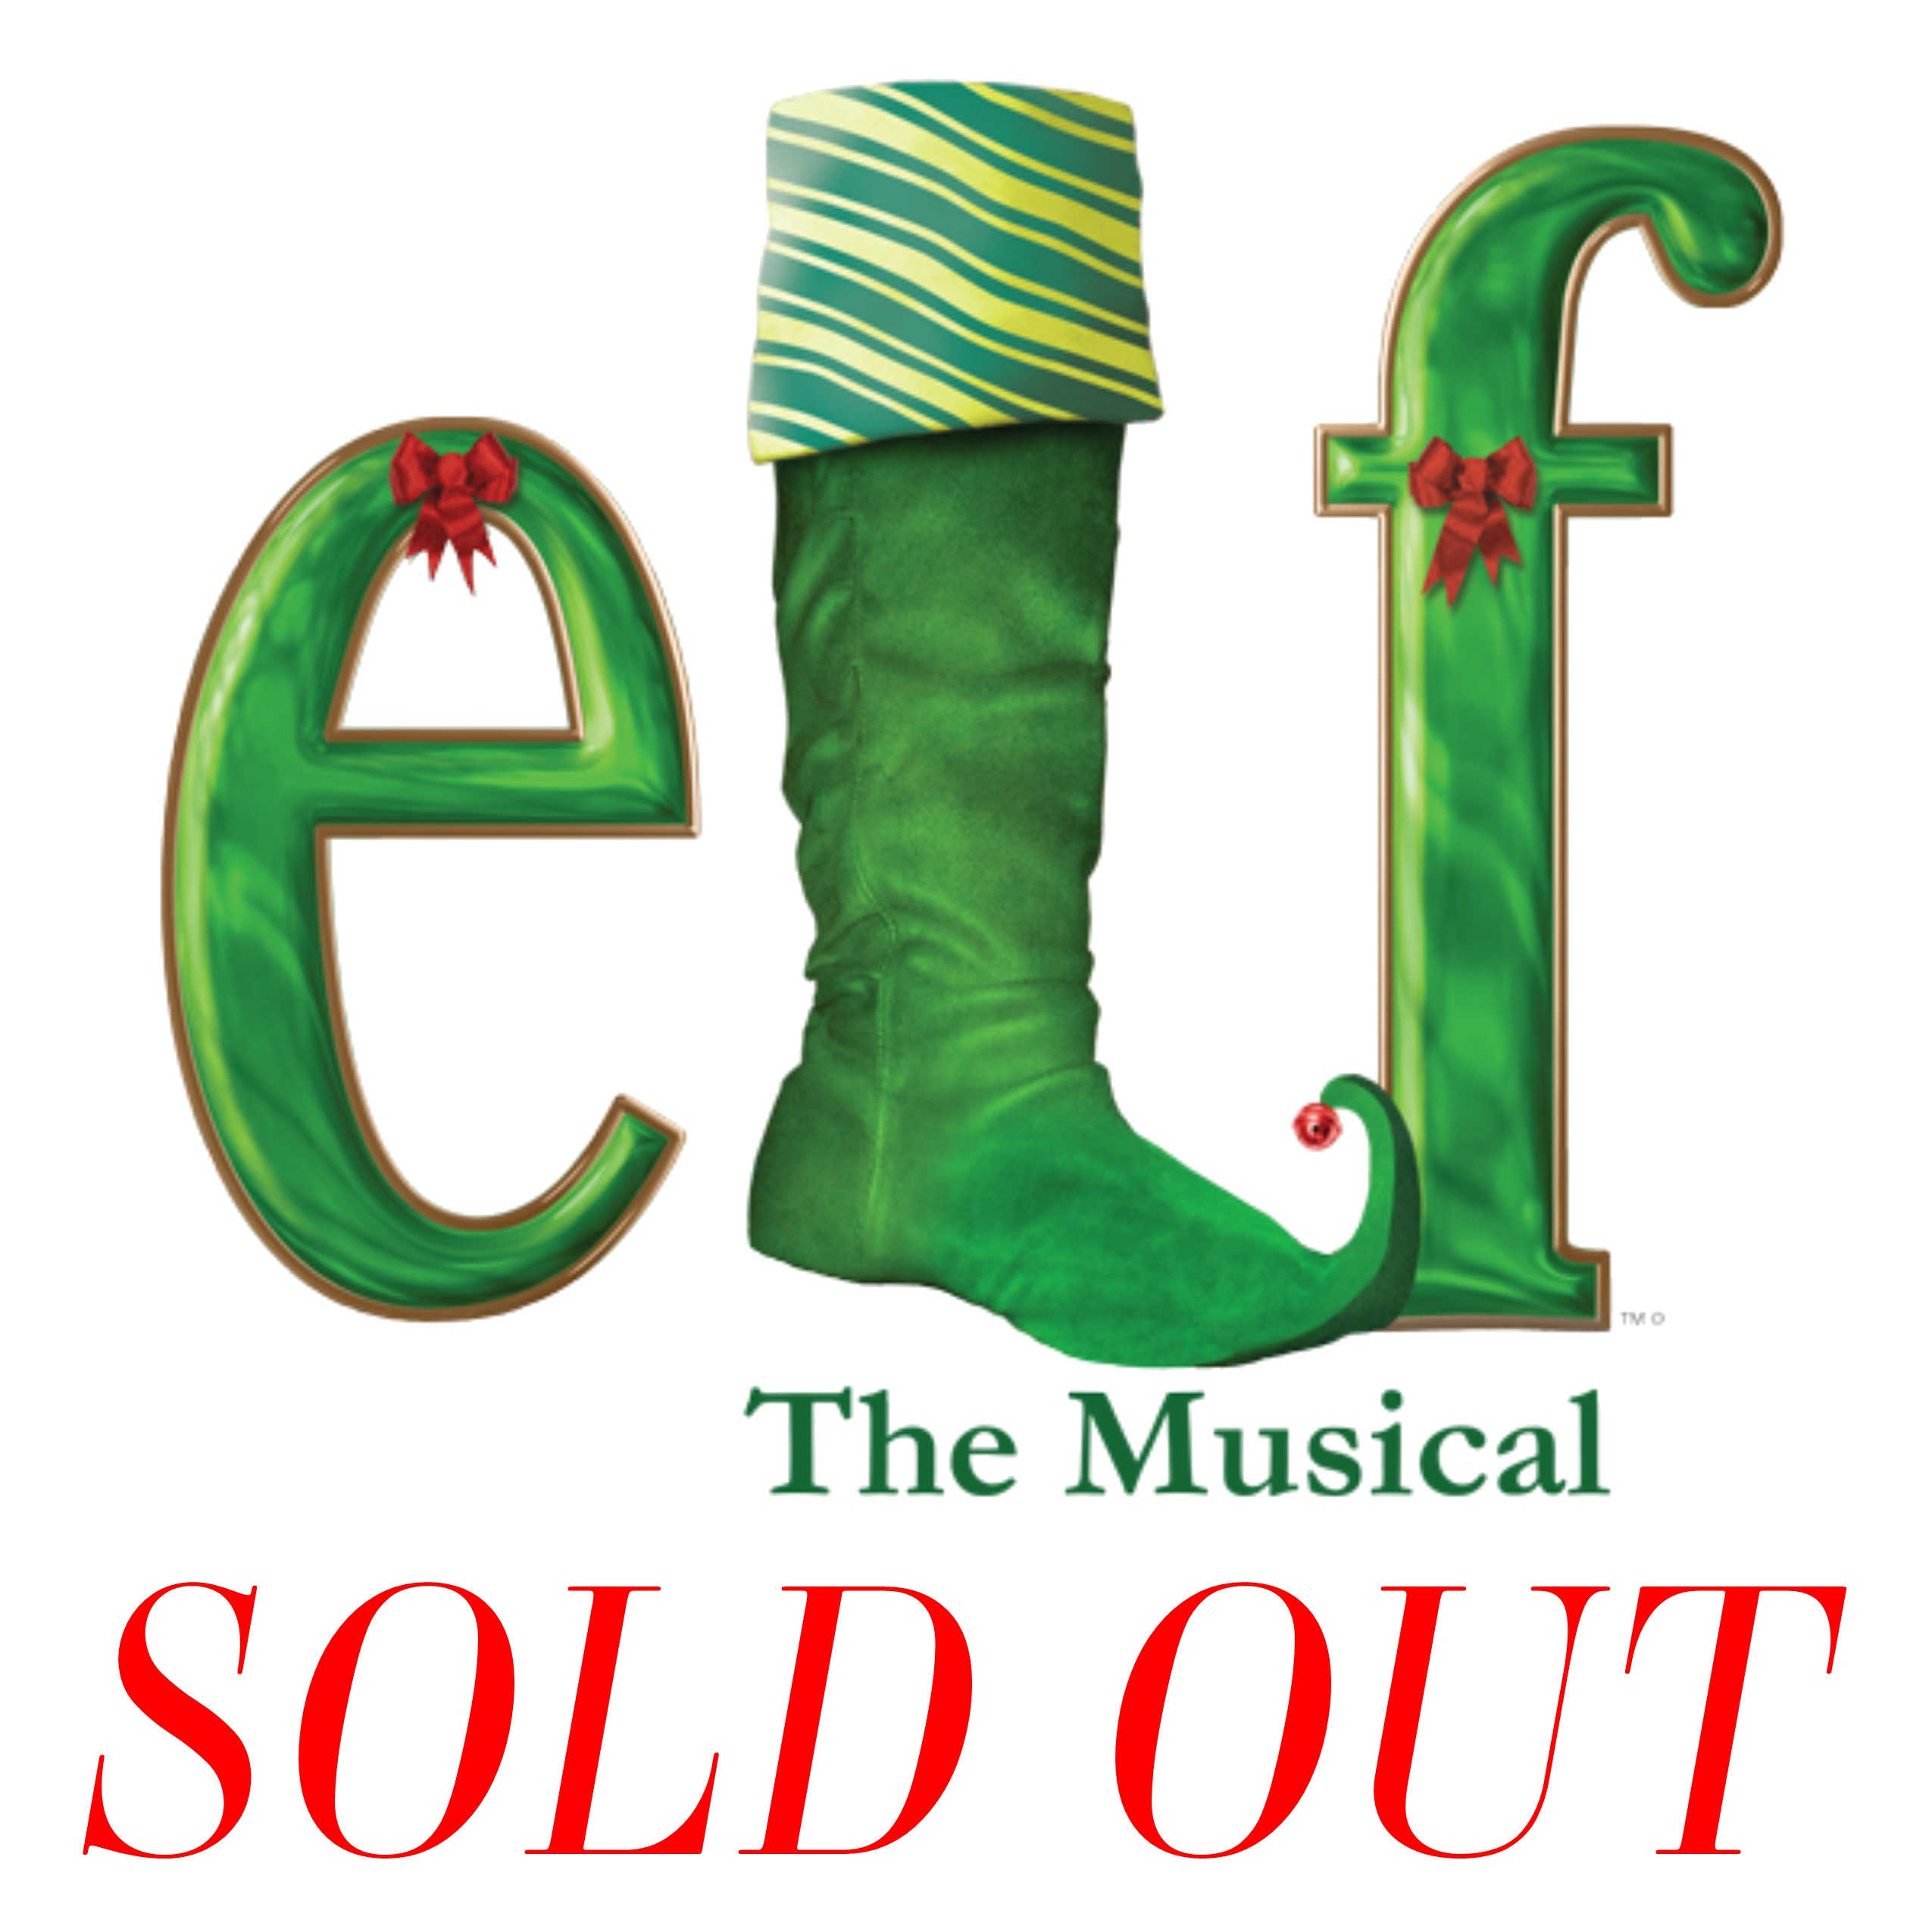 ELF Square sold out